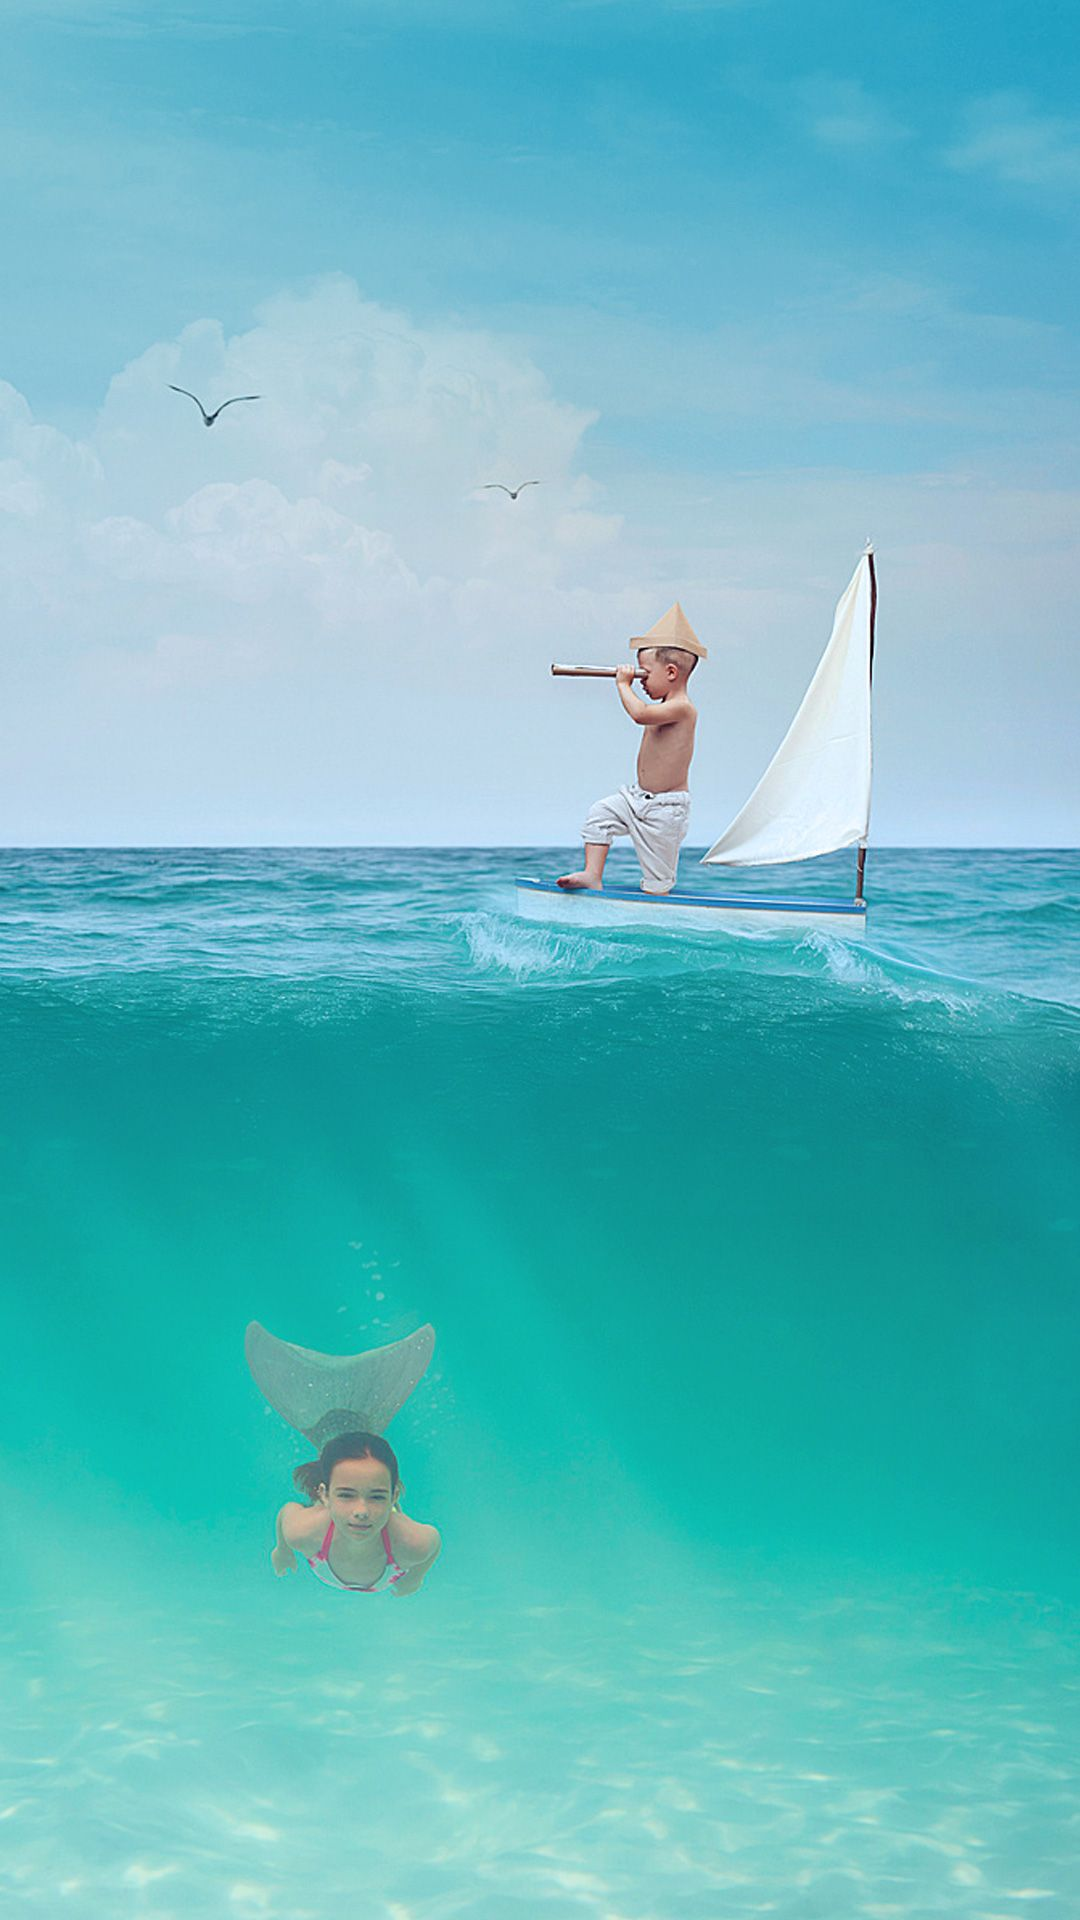 Kids By The Sea Xiaomi Mi5 Stock Wallpapers Tap To See More Iphone